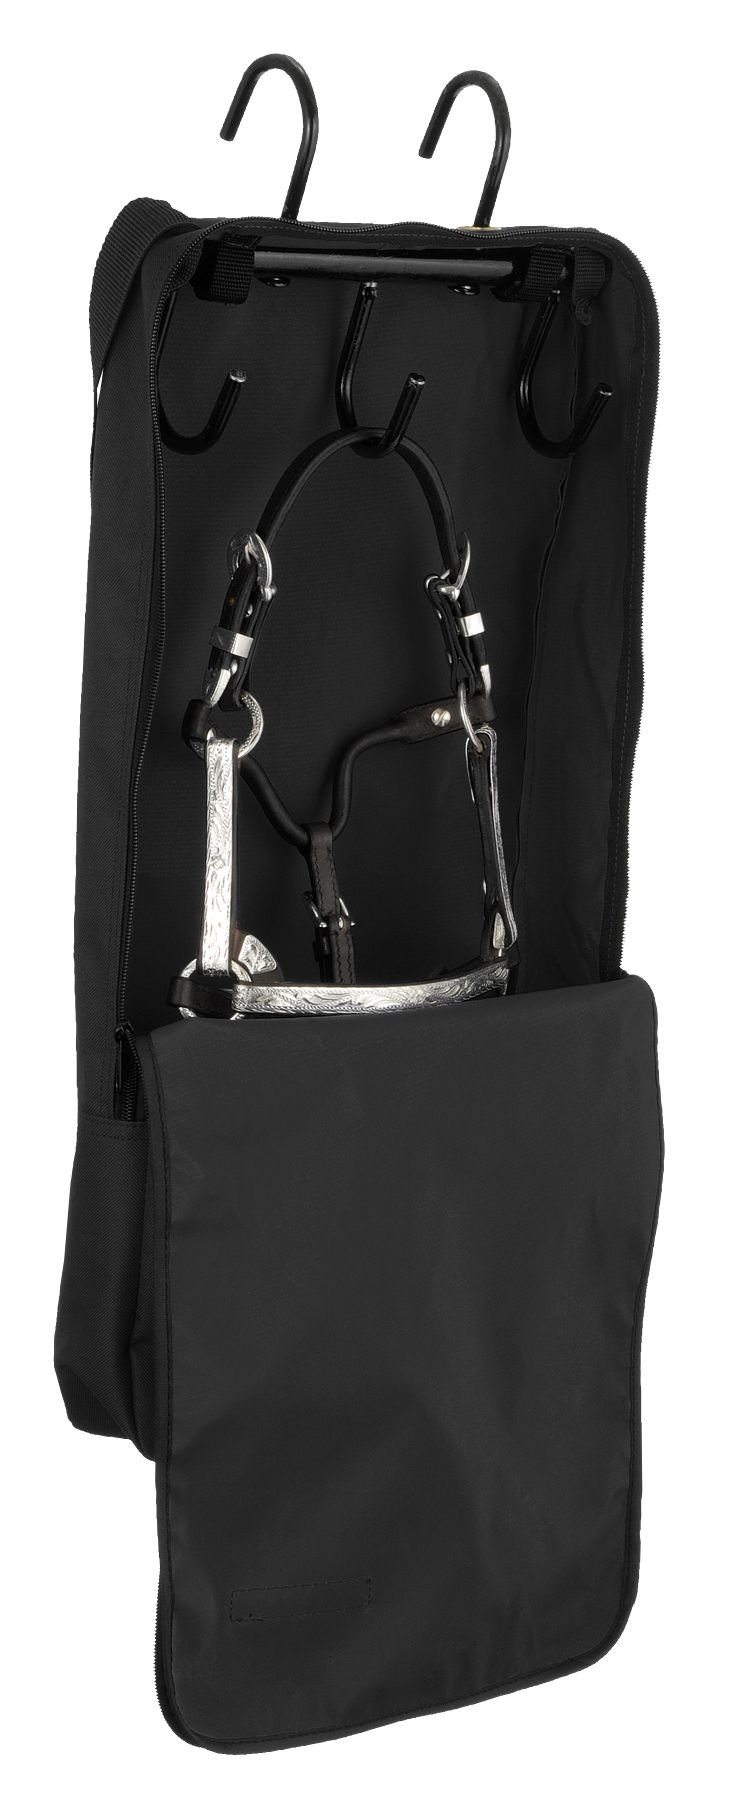 Tough 1 Mini Halter and Bridle Bag with Rack, Black by Tough 1